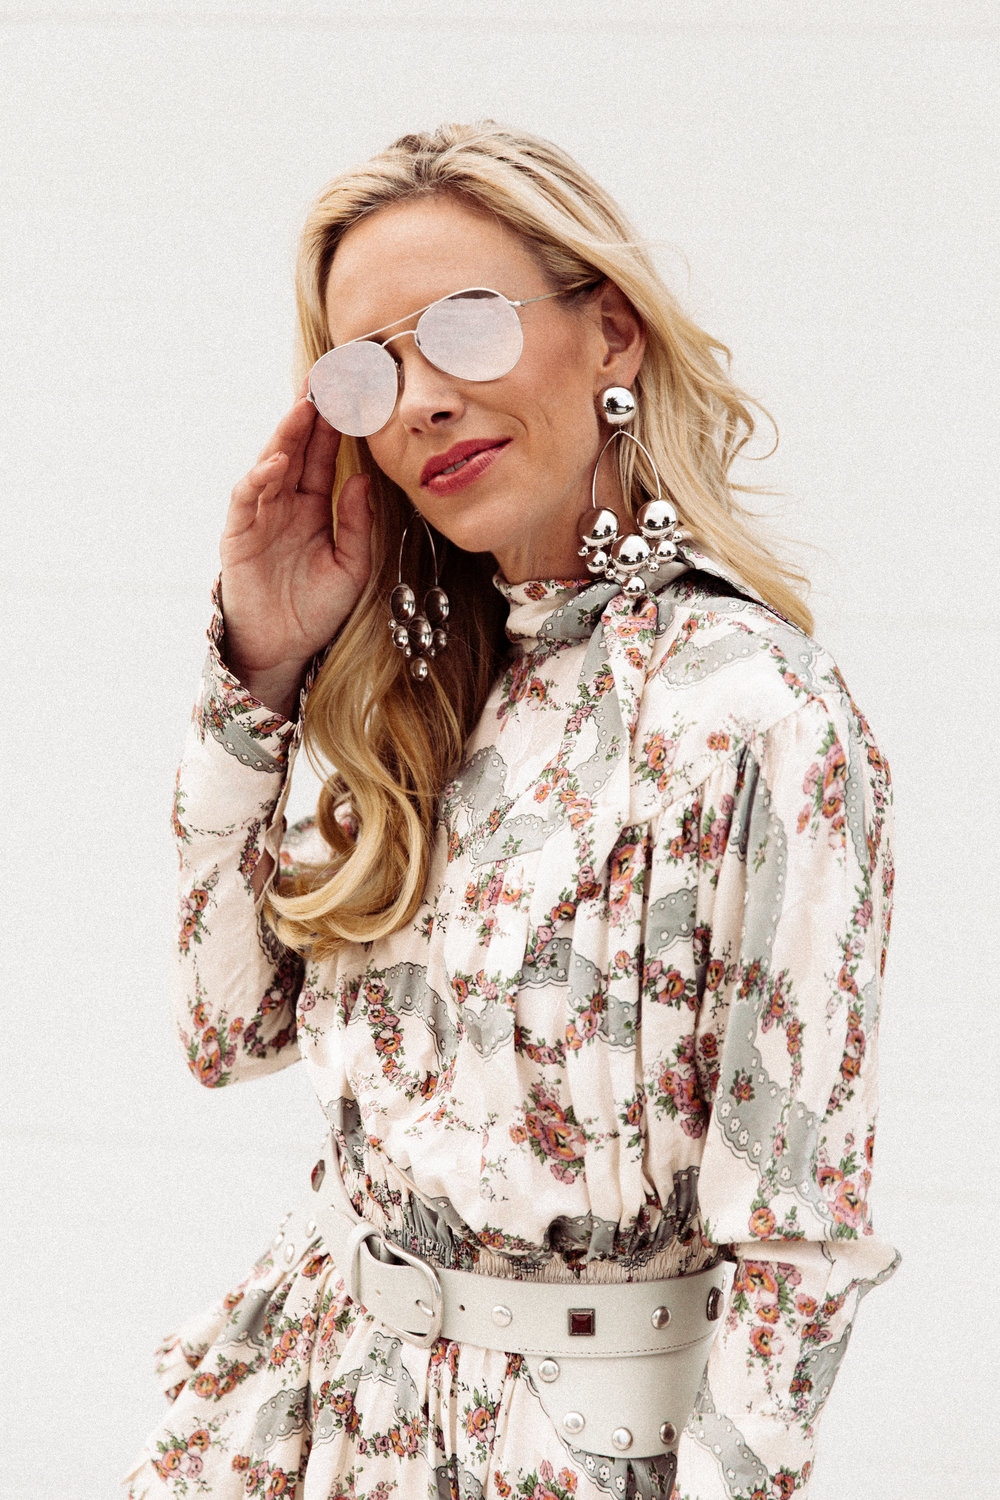 """My newfound love has been with Isabel Marant. While the line has been around for quite some time, it came out on a mission in 2018 and has continued to be one of the """"it"""" designers in 2019. The cuts are flirty, the prints are edgy, and the belts are flat out kick ass.   Chic Meets West, Krista Glover"""